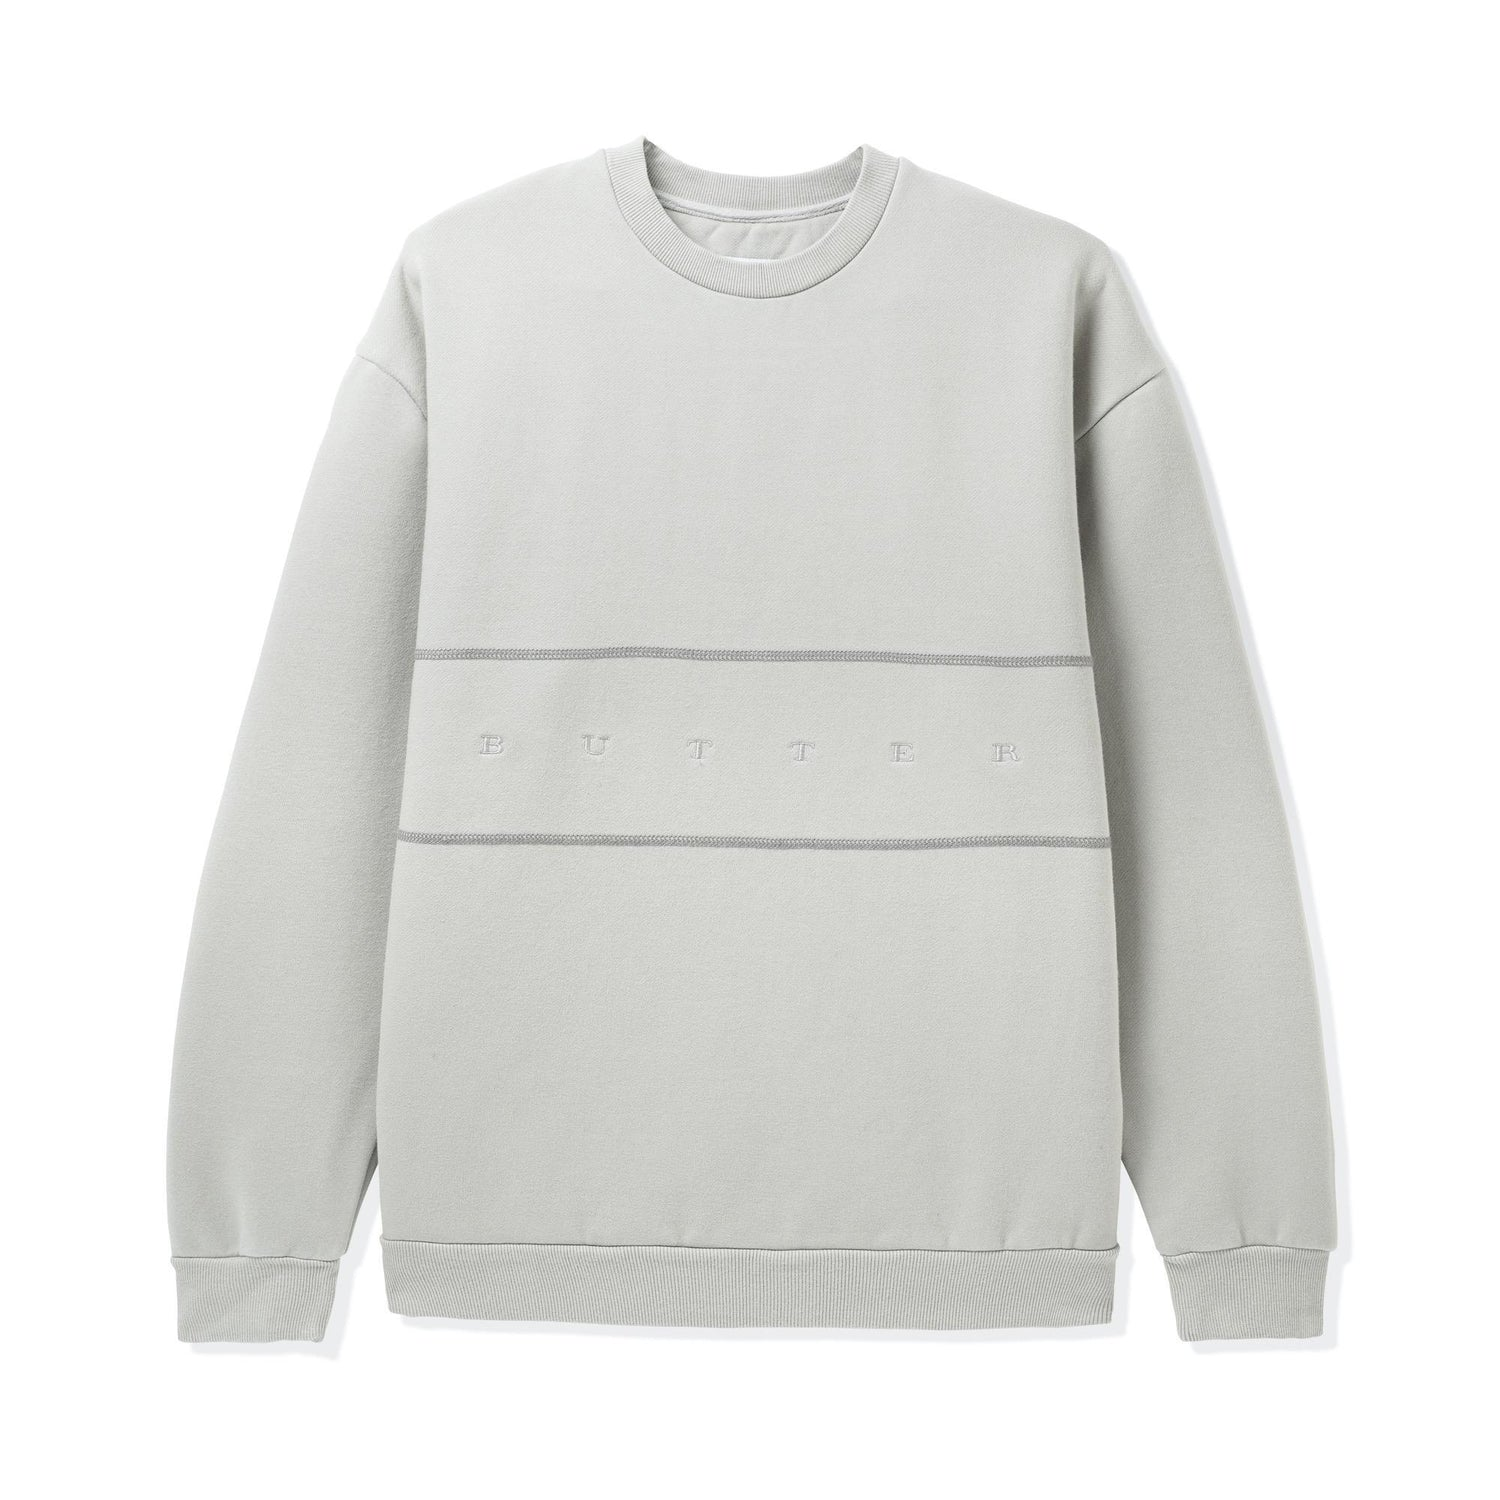 Hampshire Pigment Dye Crewneck, Cement